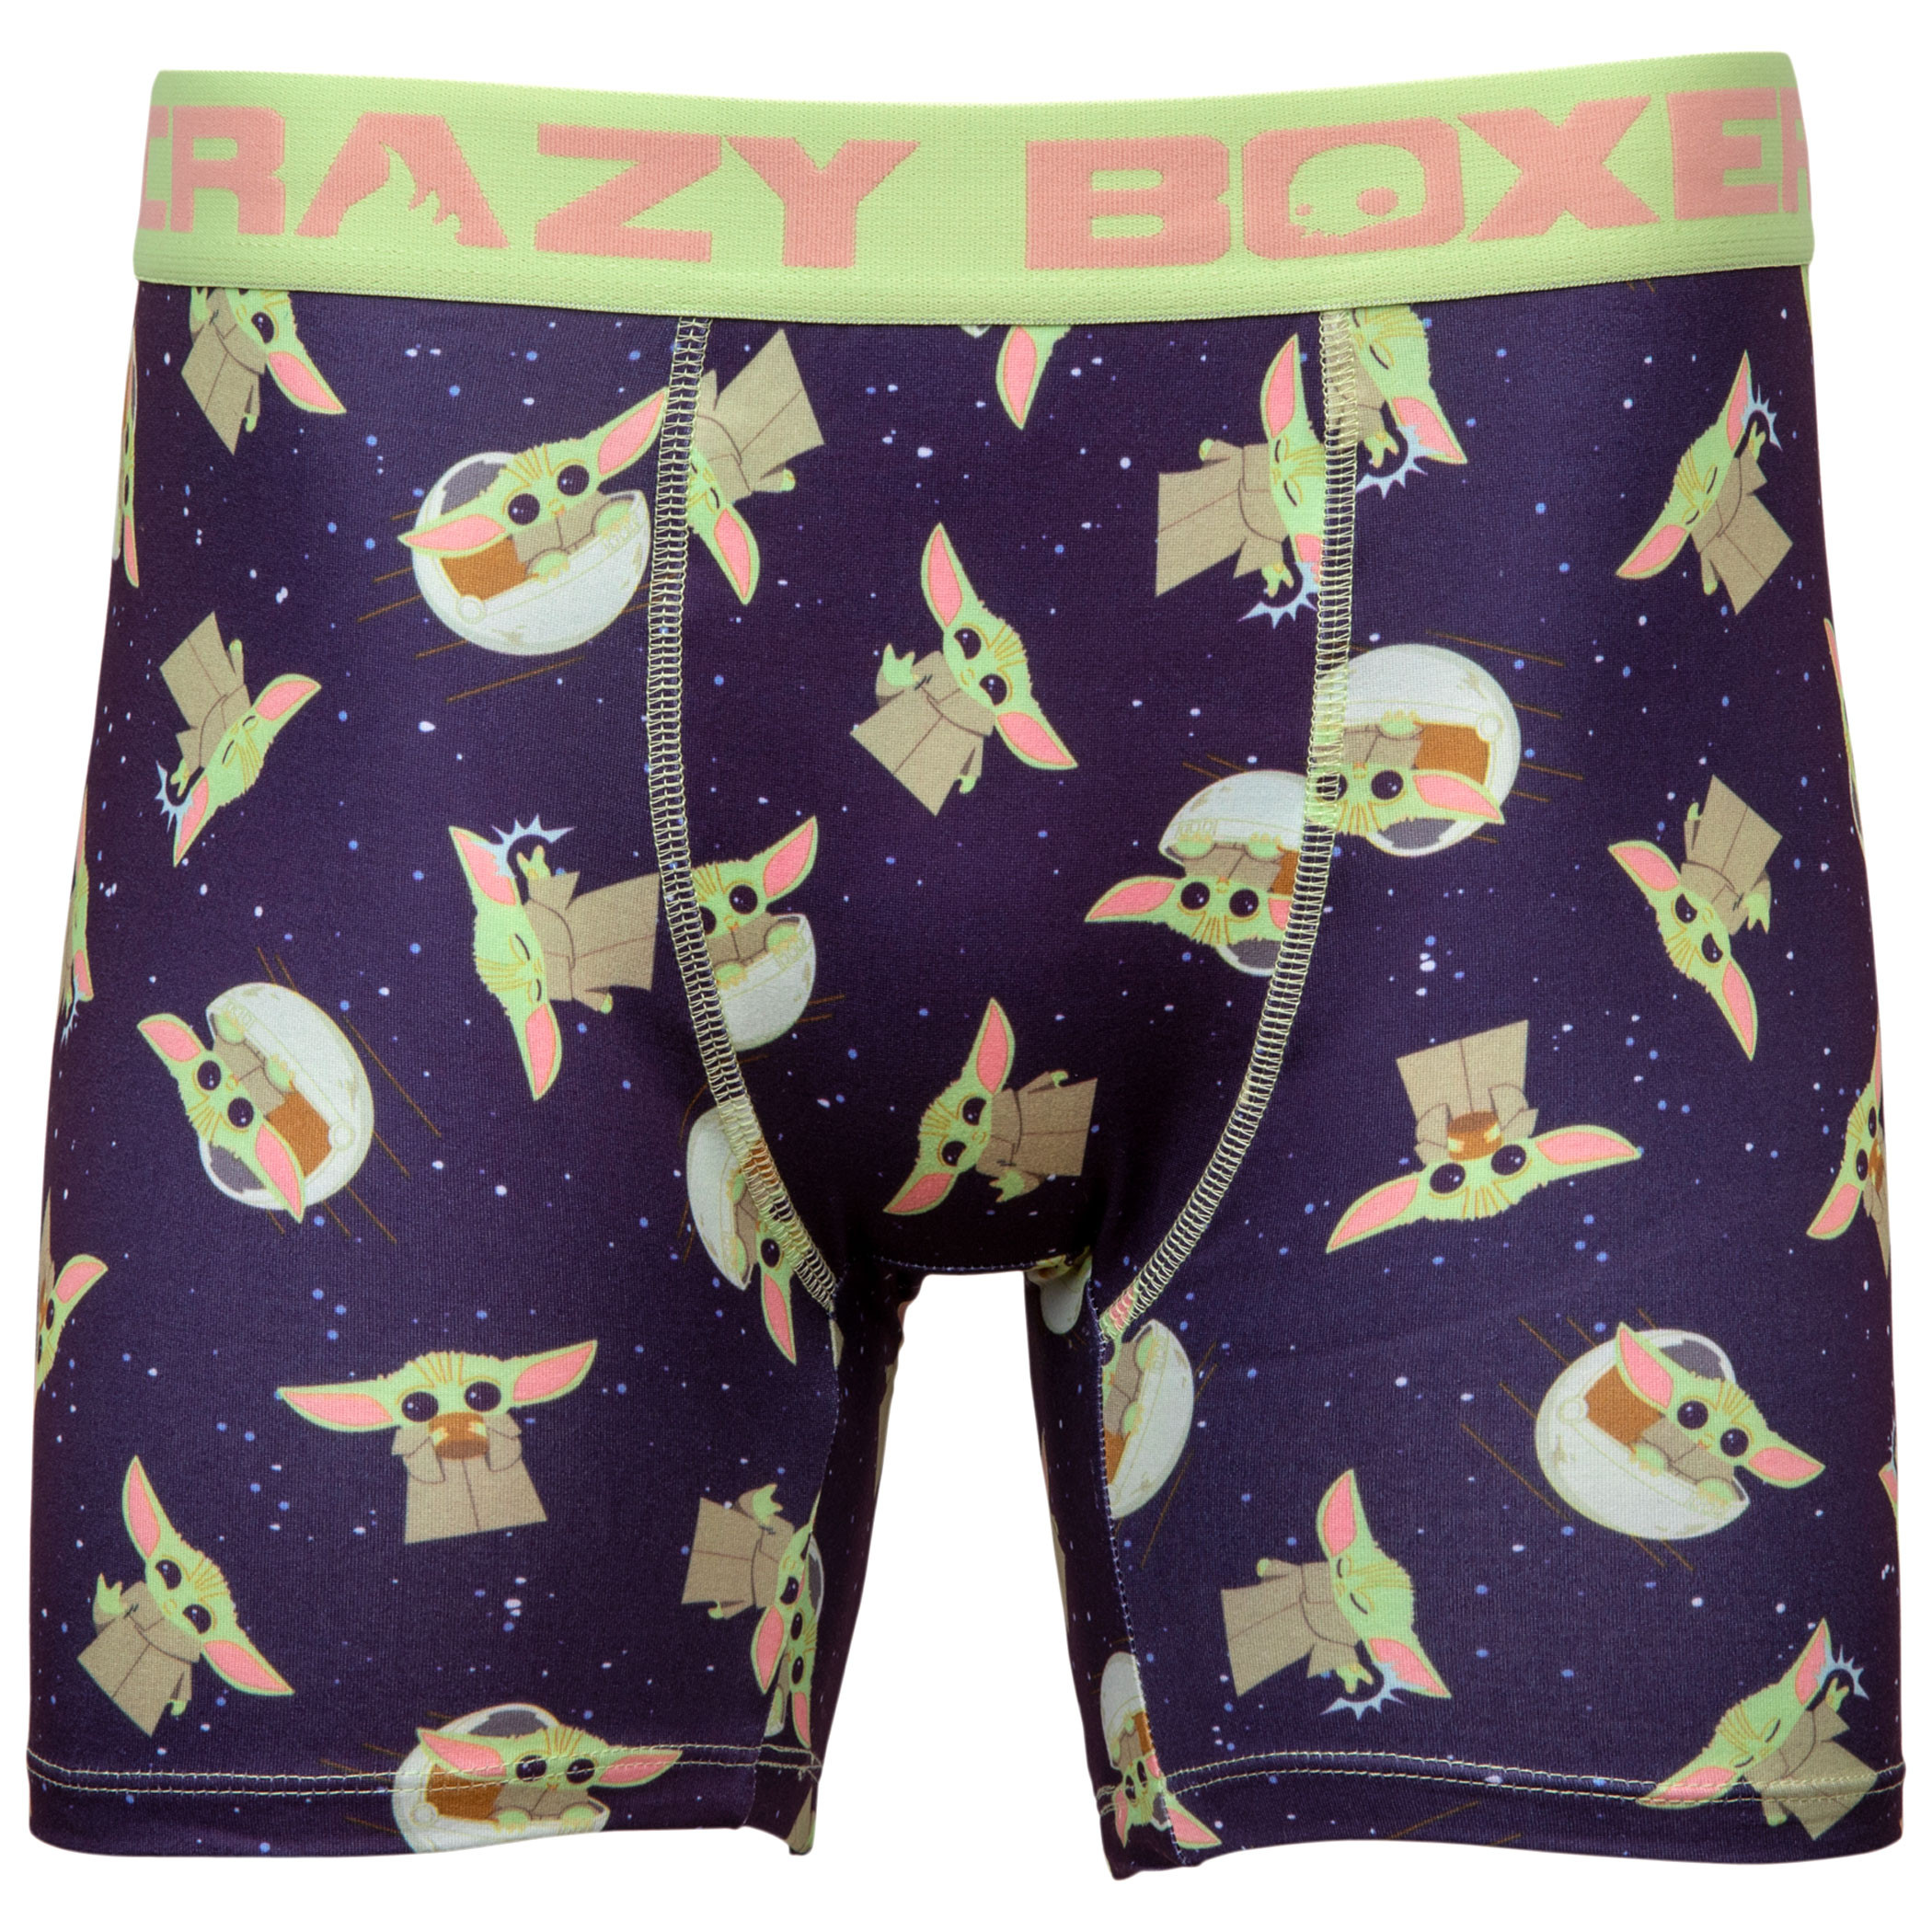 Star Wars The Mandalorian The Child Men's Boxer Briefs Shorts